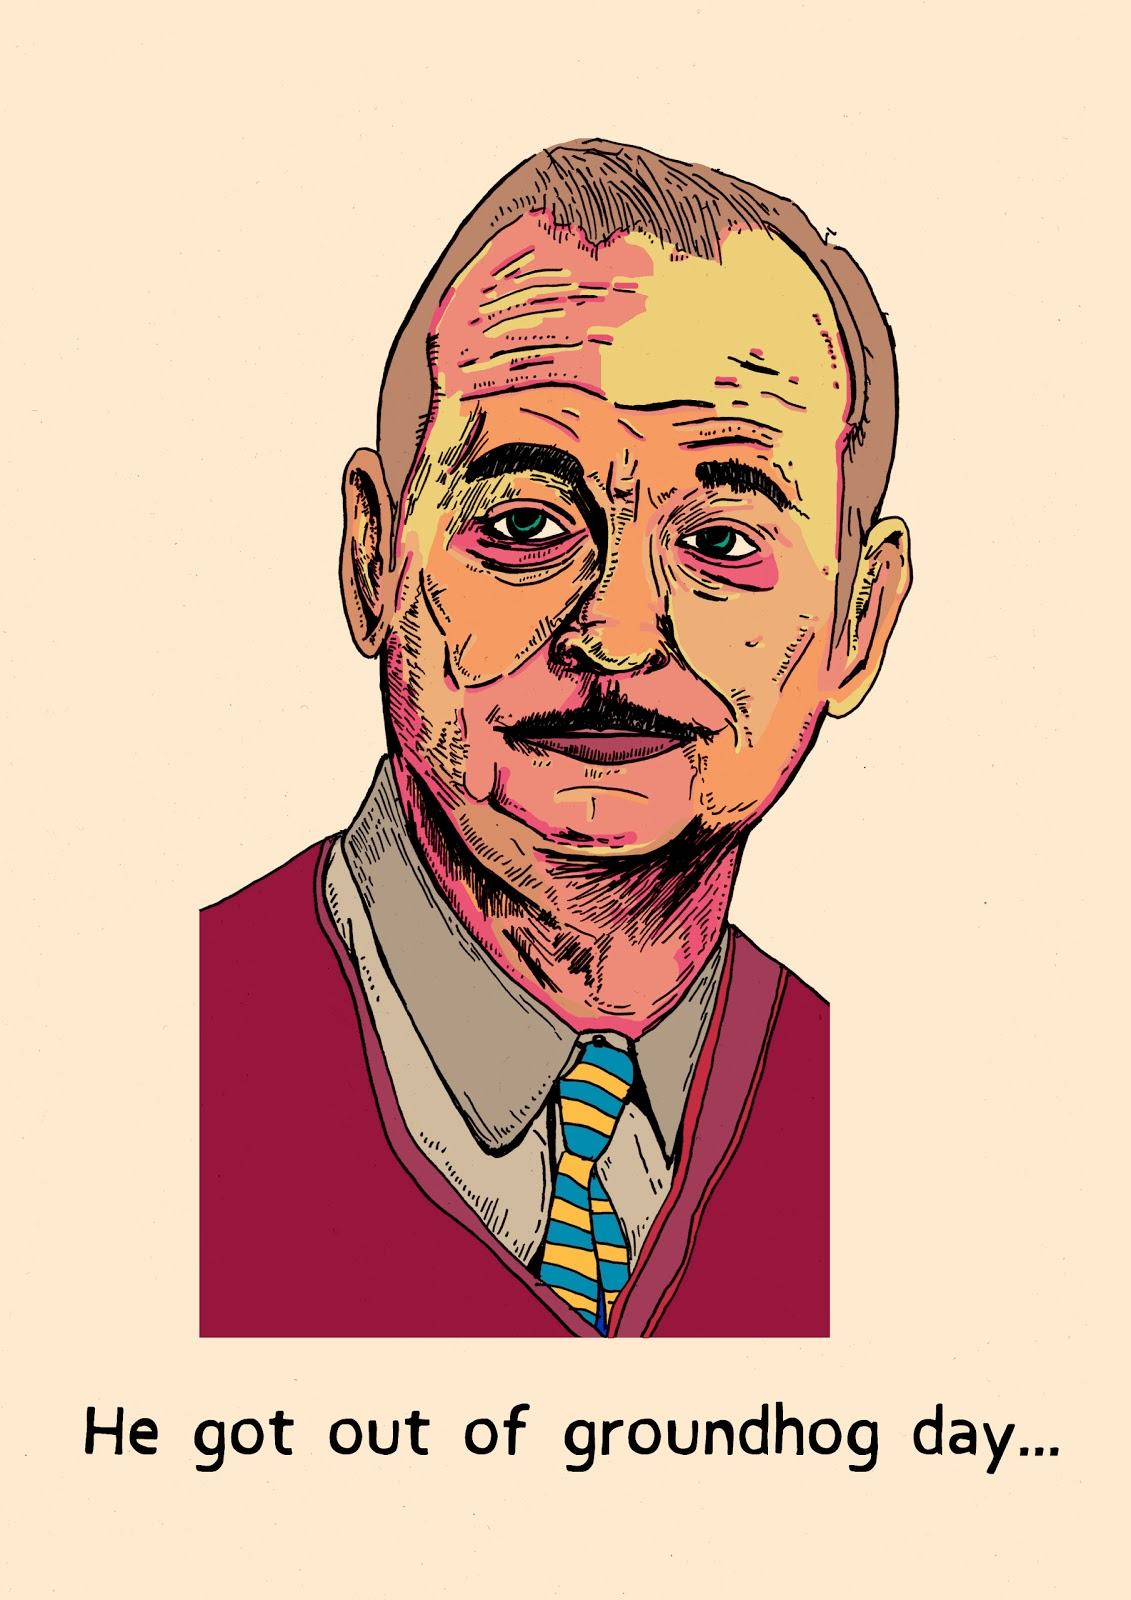 and below is my coloured drawing of bill murrayhaving escaped groundhog day hes gotten a lil older you know like real life - Bill Murray Coloring Book